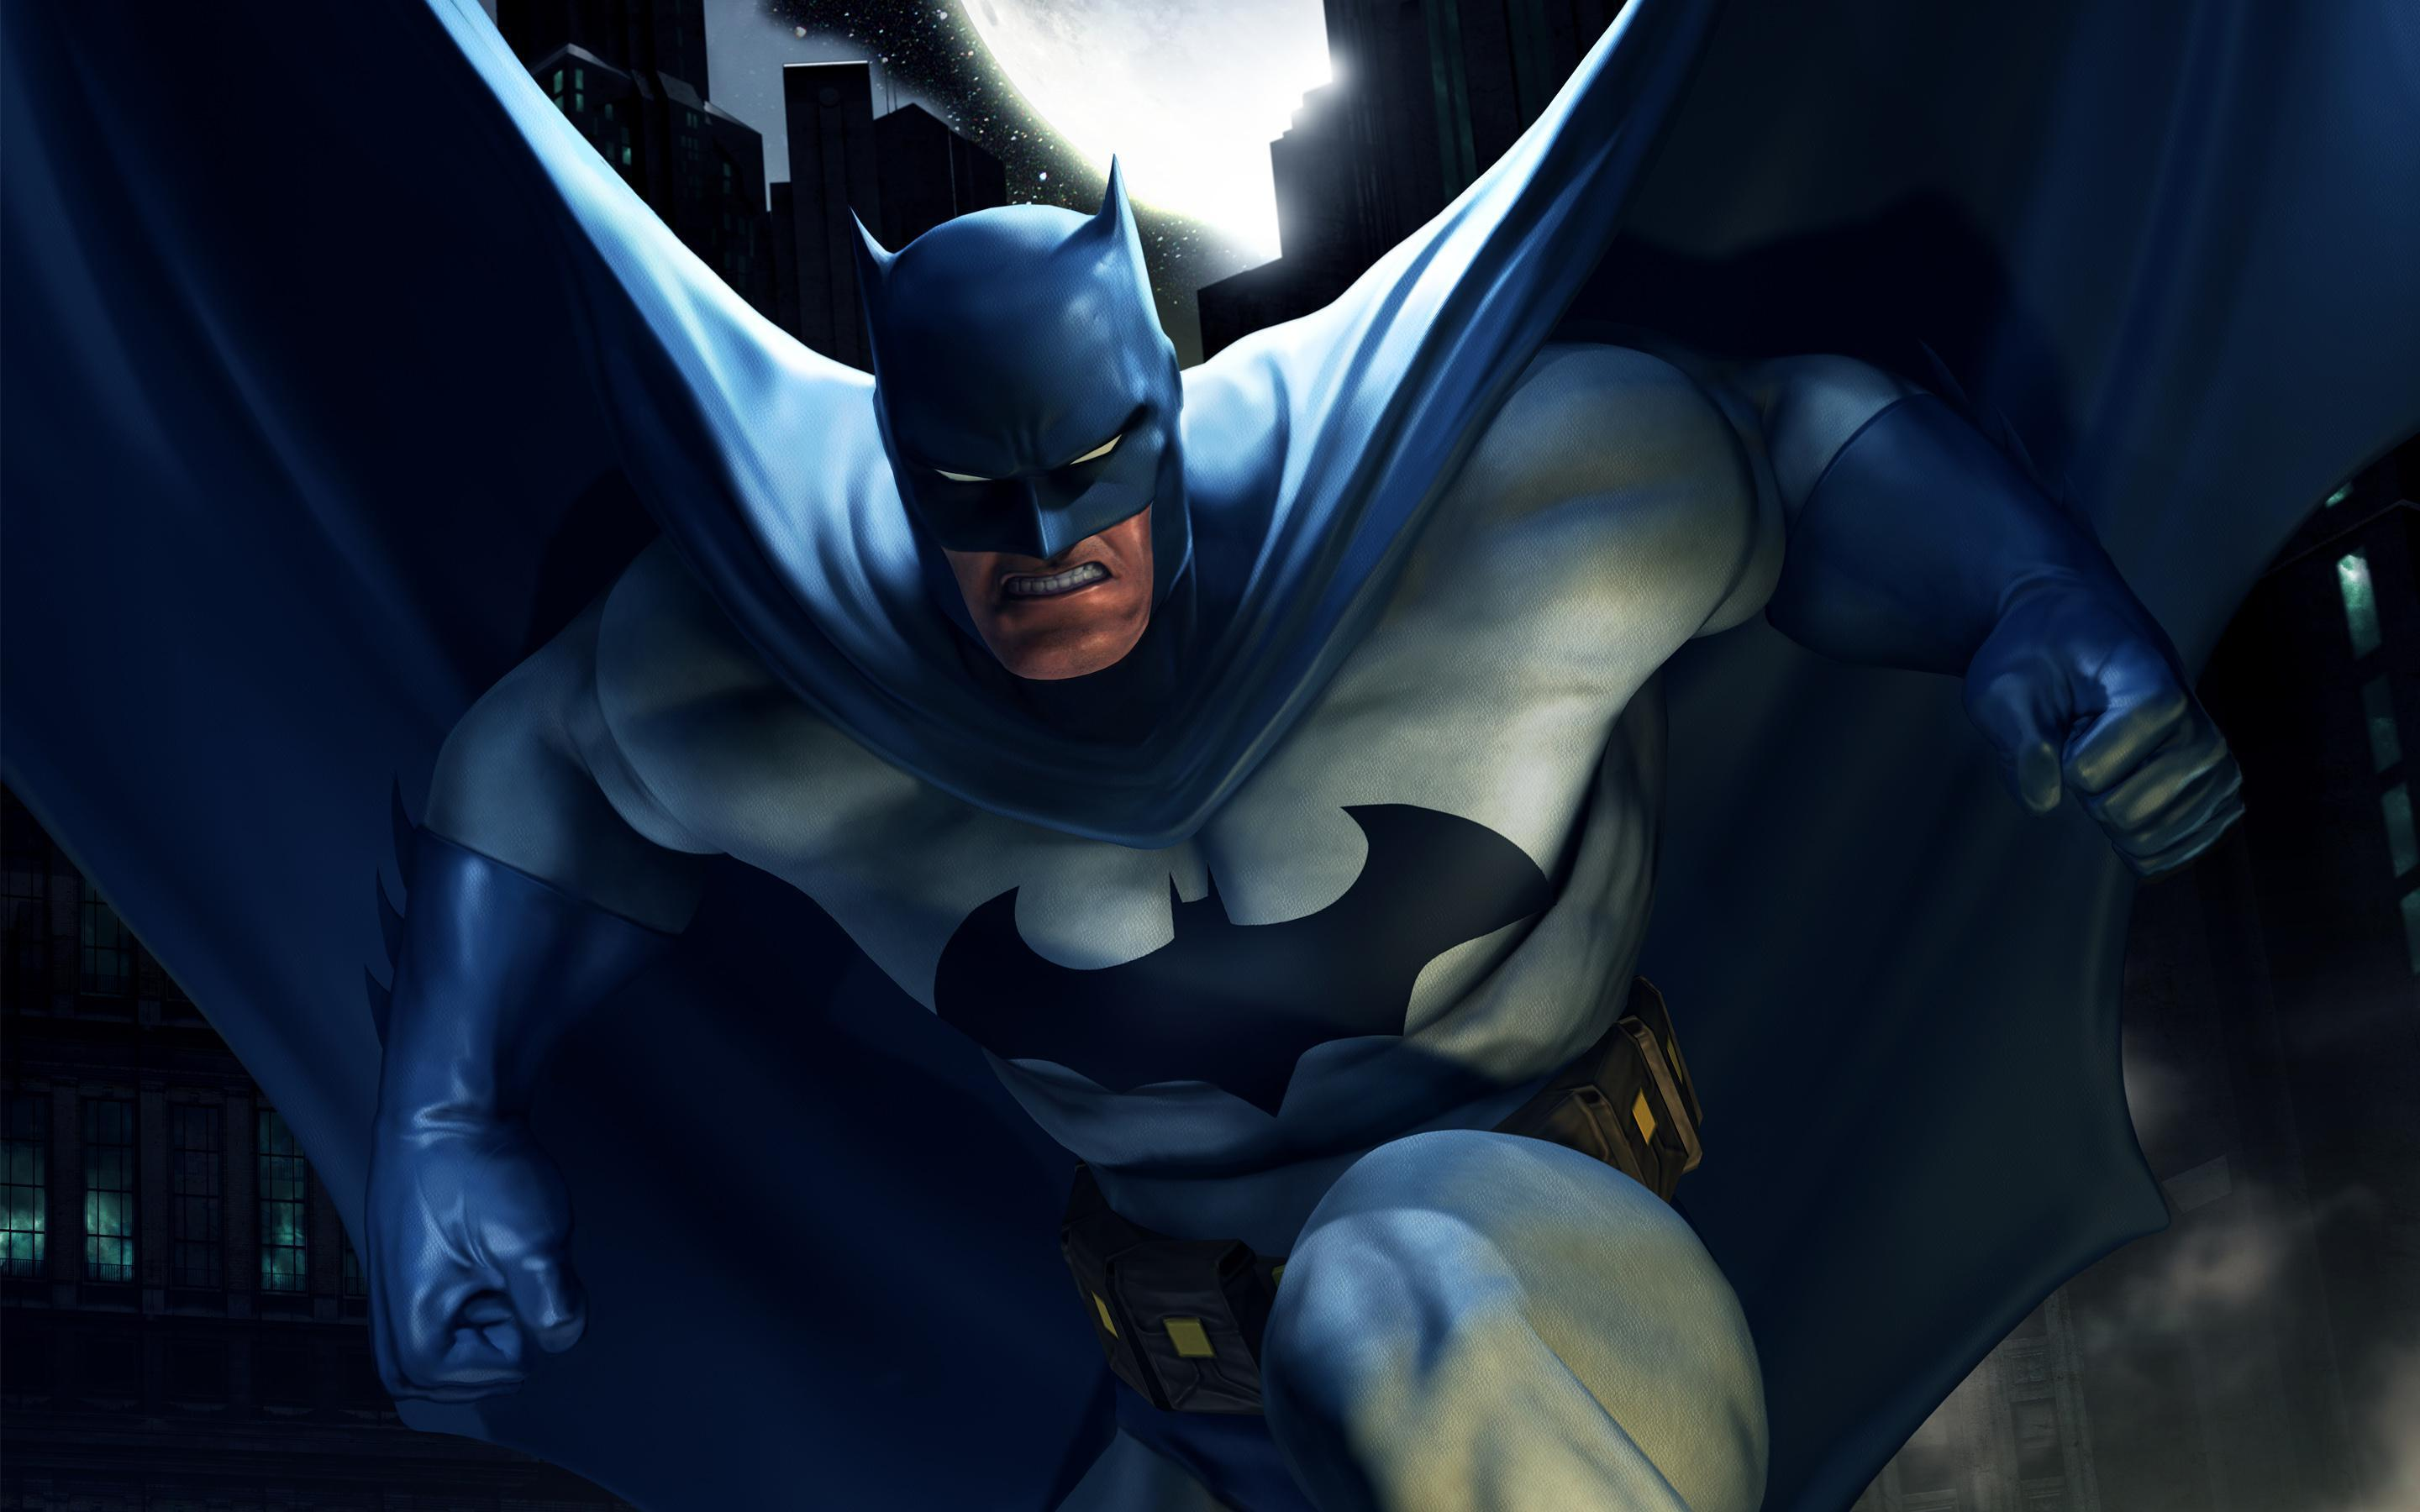 comics batman background hero - photo #2